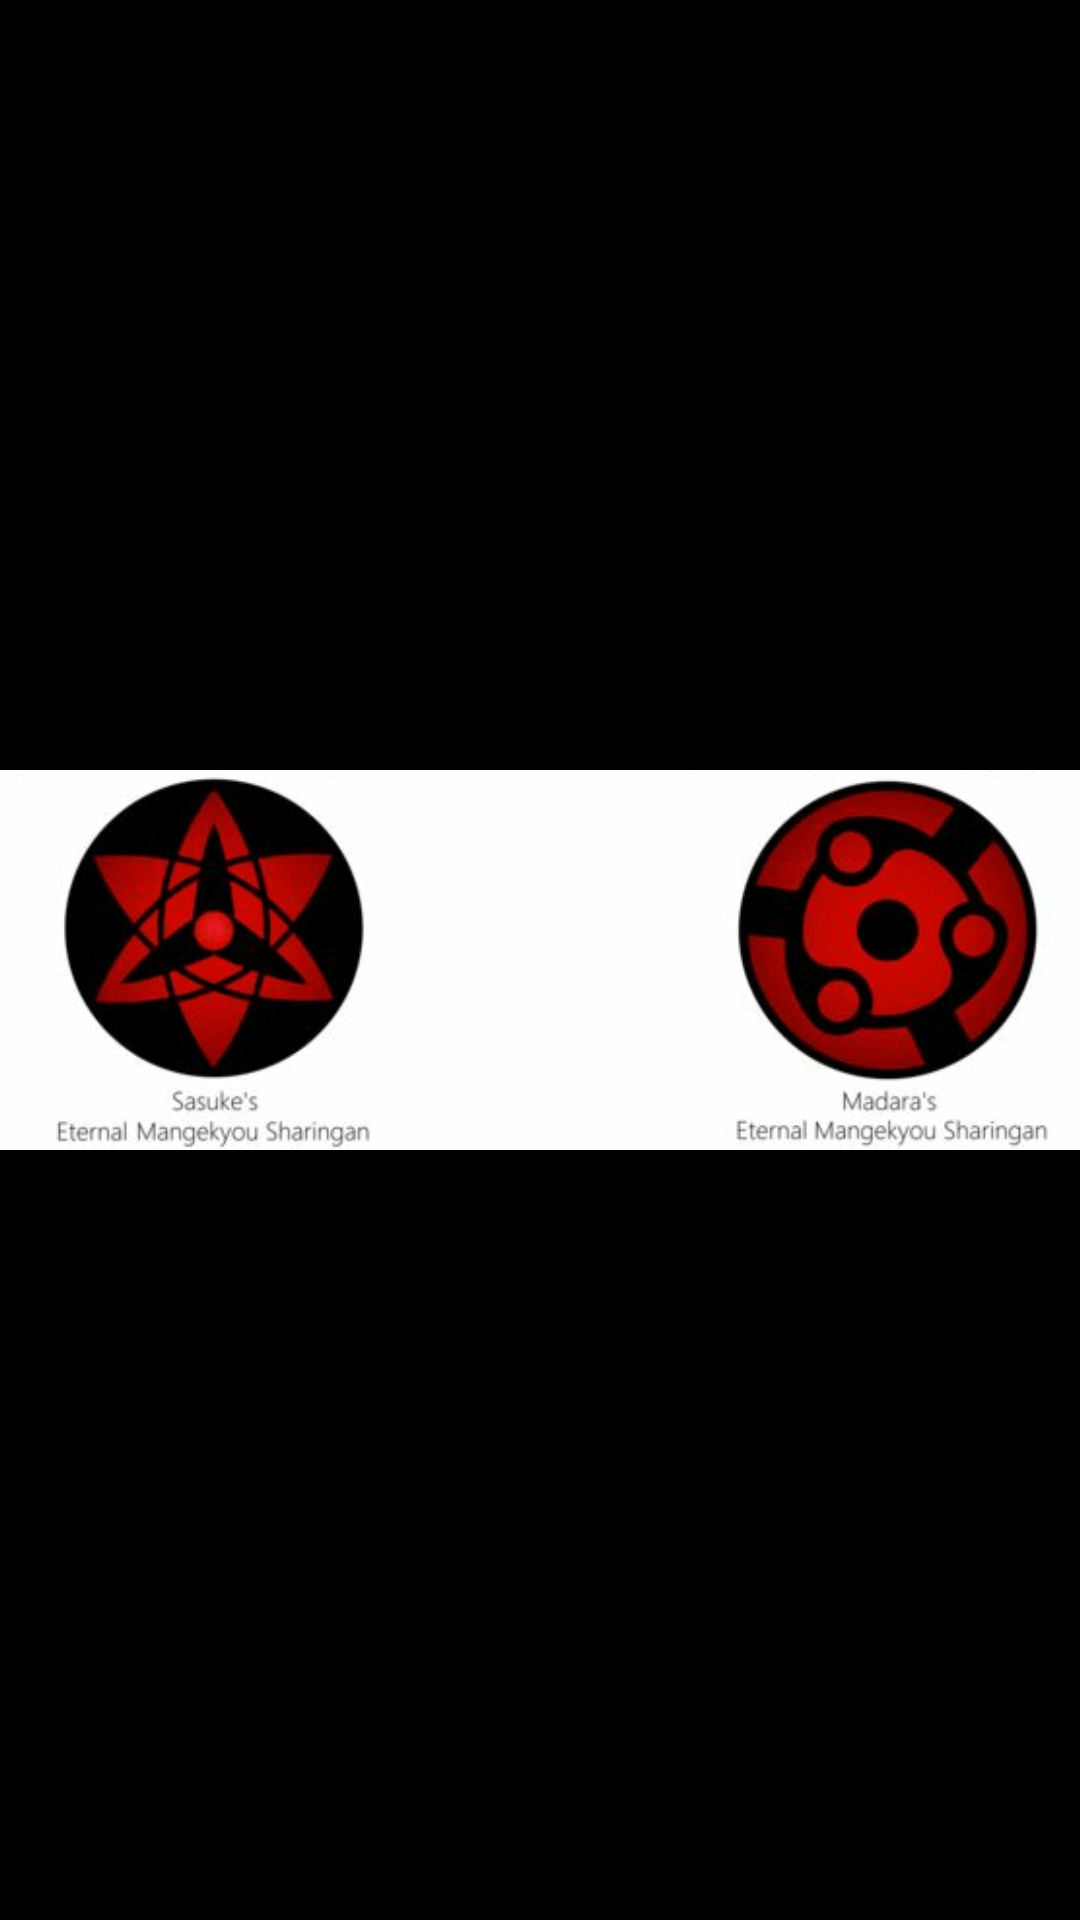 Mangekyou Sharingan Tattoo : mangekyou, sharingan, tattoo, Uchiha, Clan:, Tattoo, Eternal, Mangekyou, Sharingan, Small, Itachi